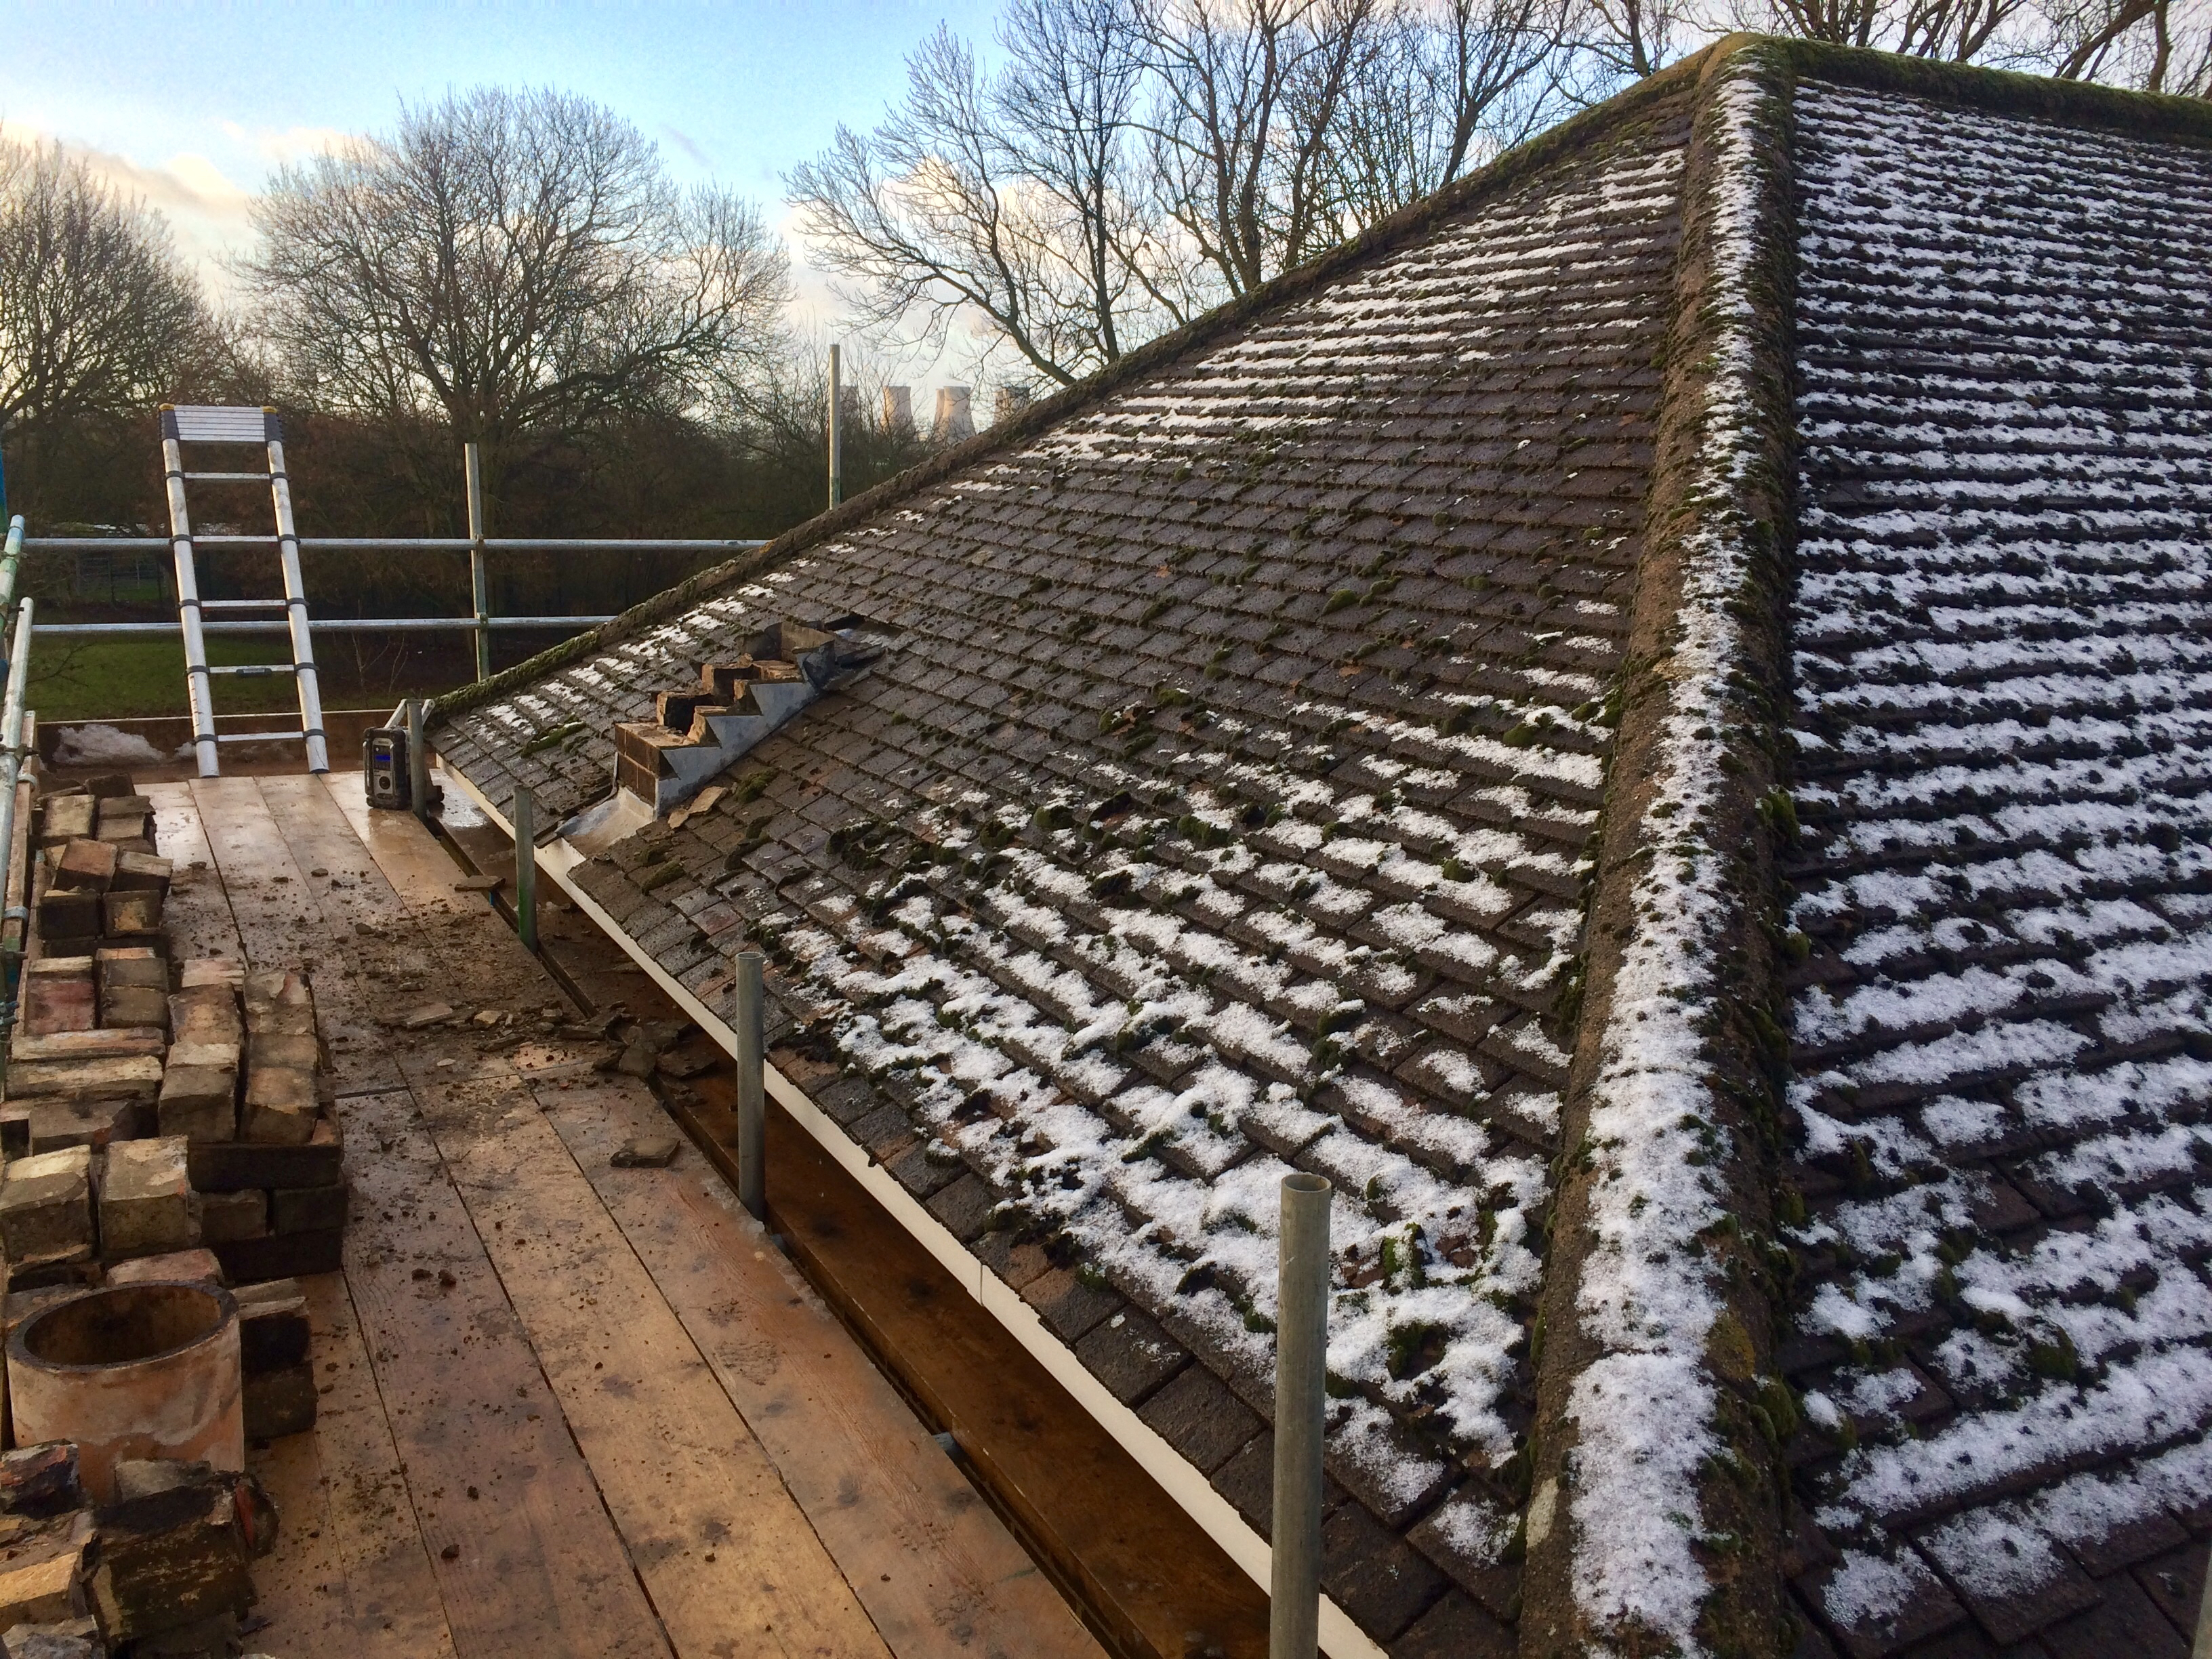 https://www.bluedotroofing.uk/wp-content/uploads/2018/01/bluedot-roofing-re-roof-marton-4.jpg